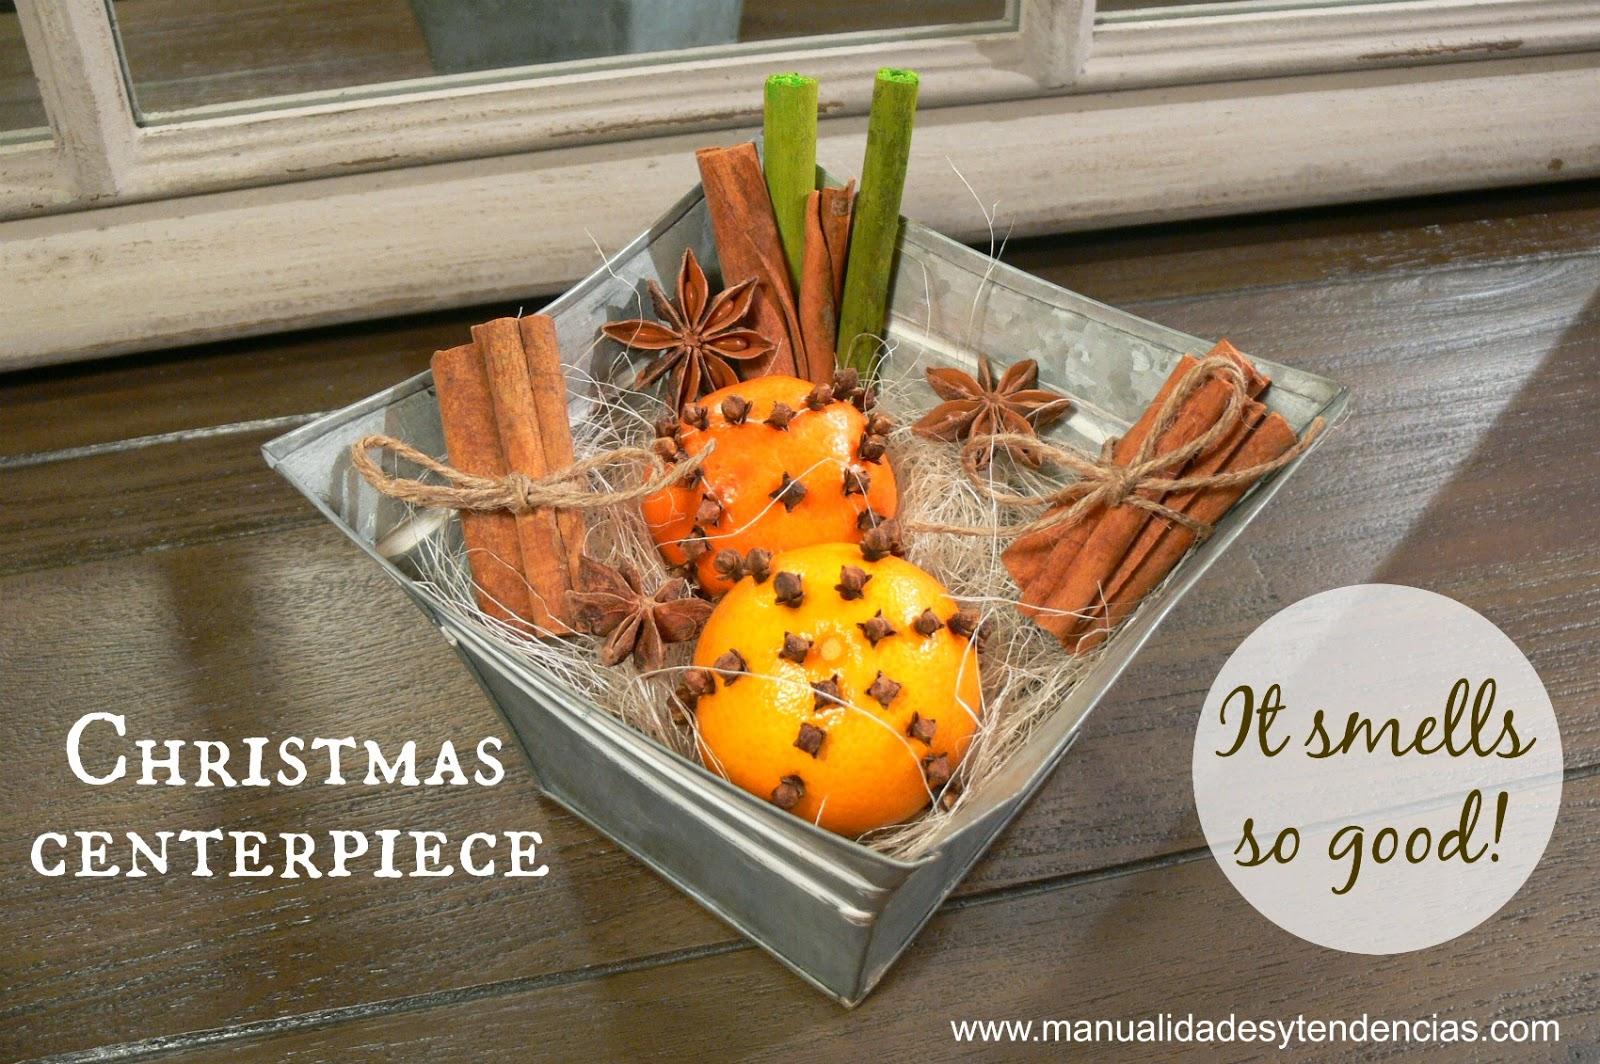 Natural Christmas centerpiece